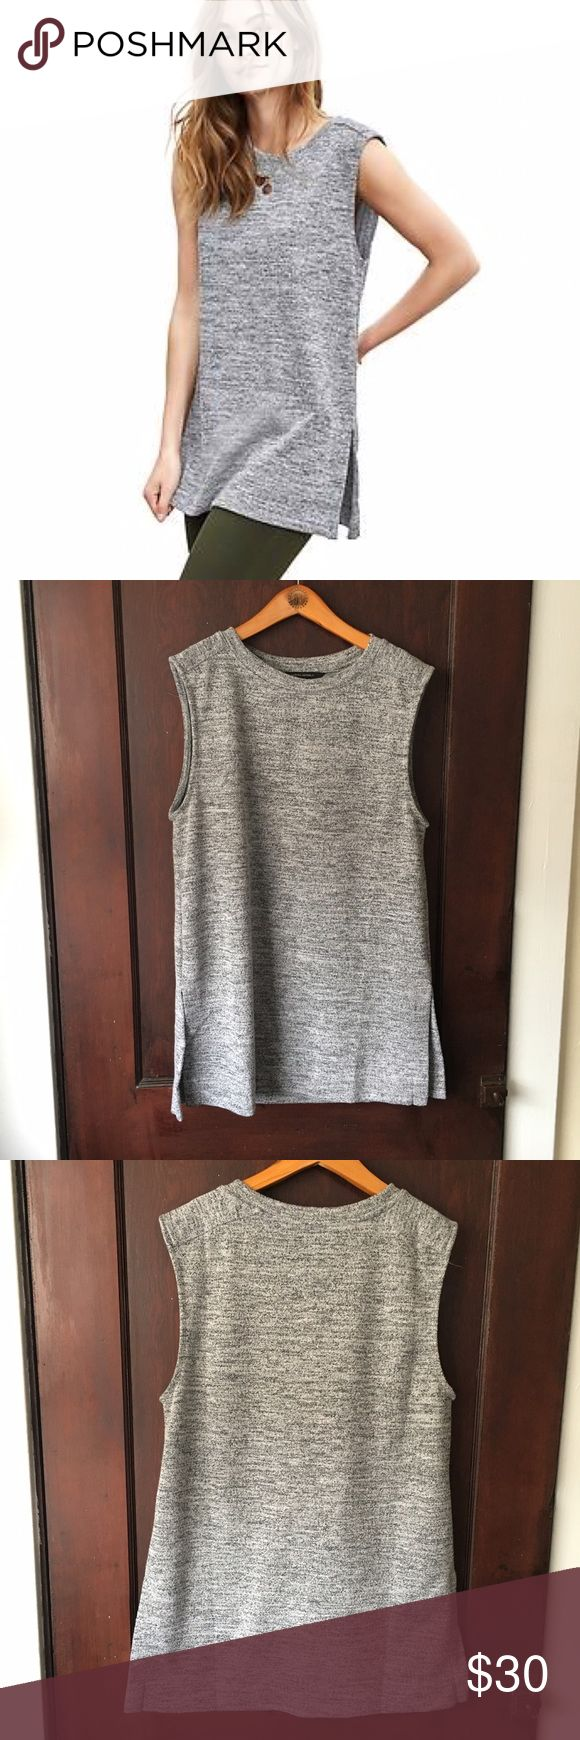 Banana Republic | Textured tunic tank This flattering tunic looks great with skinny jeans or leggings -- a closet staple! In excellent preworn condition. No trades or PayPal. Banana Republic Tops Tunics